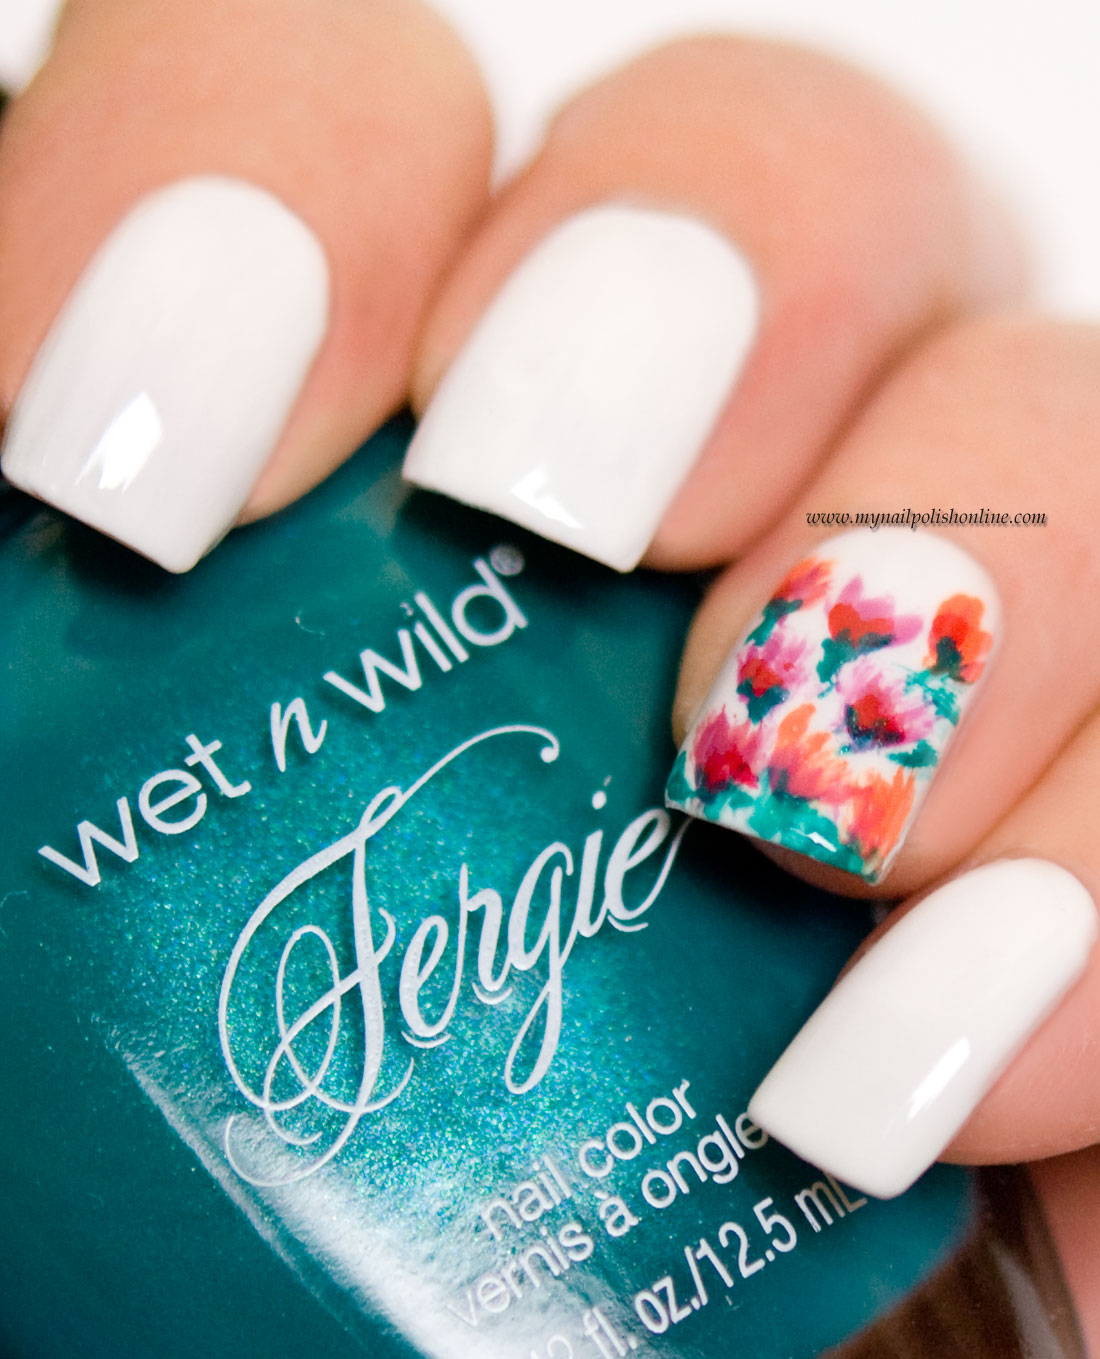 Nail Art - Accent nail with flowers - My Nail Polish Online